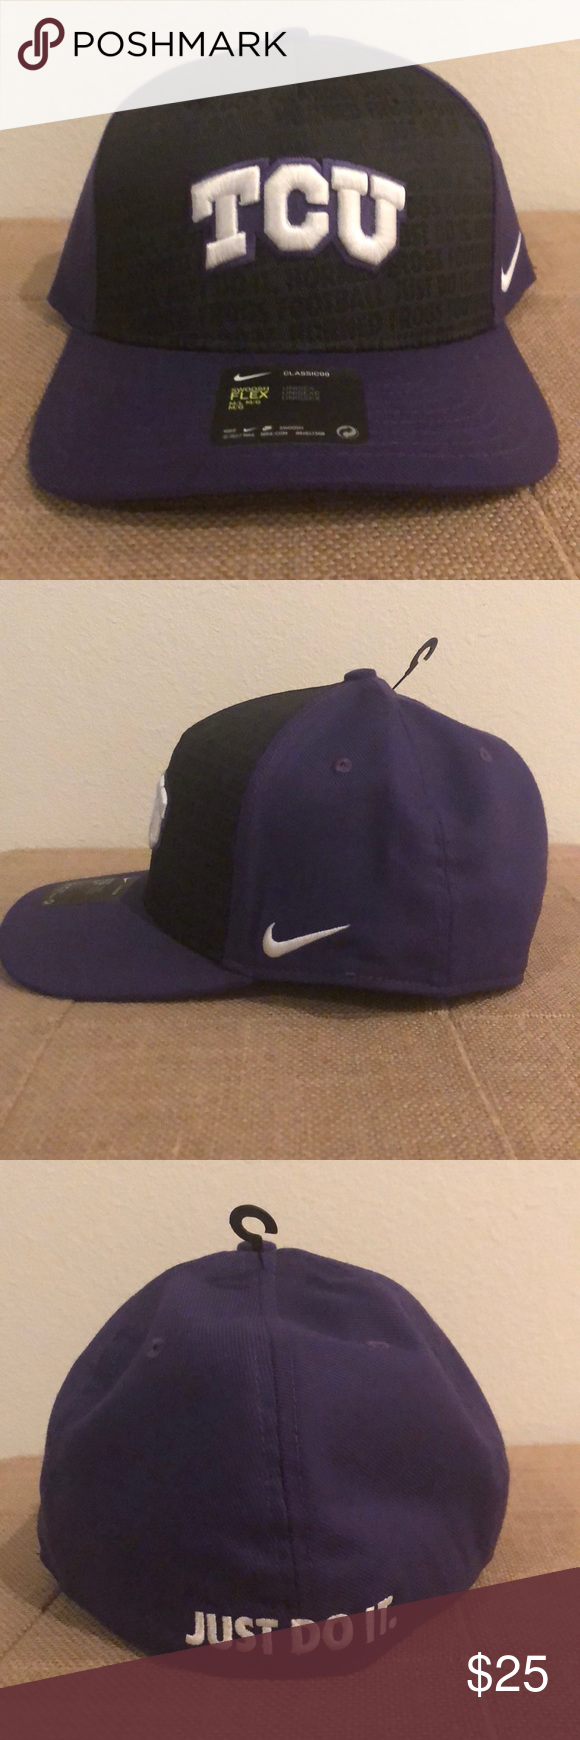 new products b3330 c72ac TCU Horned Frogs Nike Just Do It Swooshflex Cap Show the world which team  you are